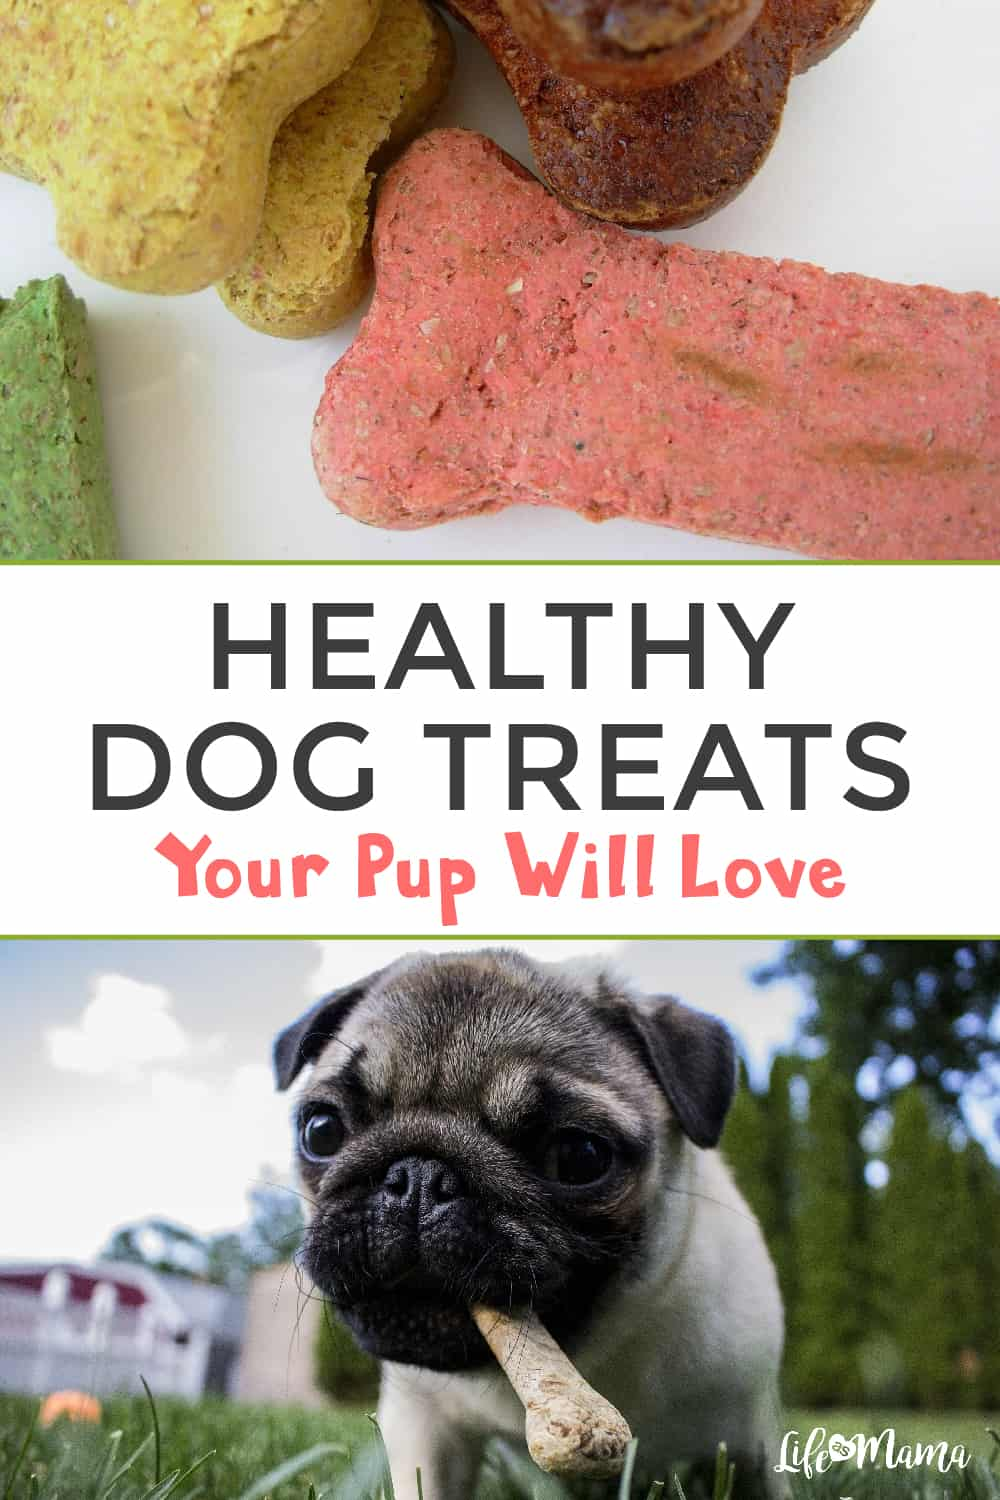 Delicious Dog Treats Your Pup Will Love